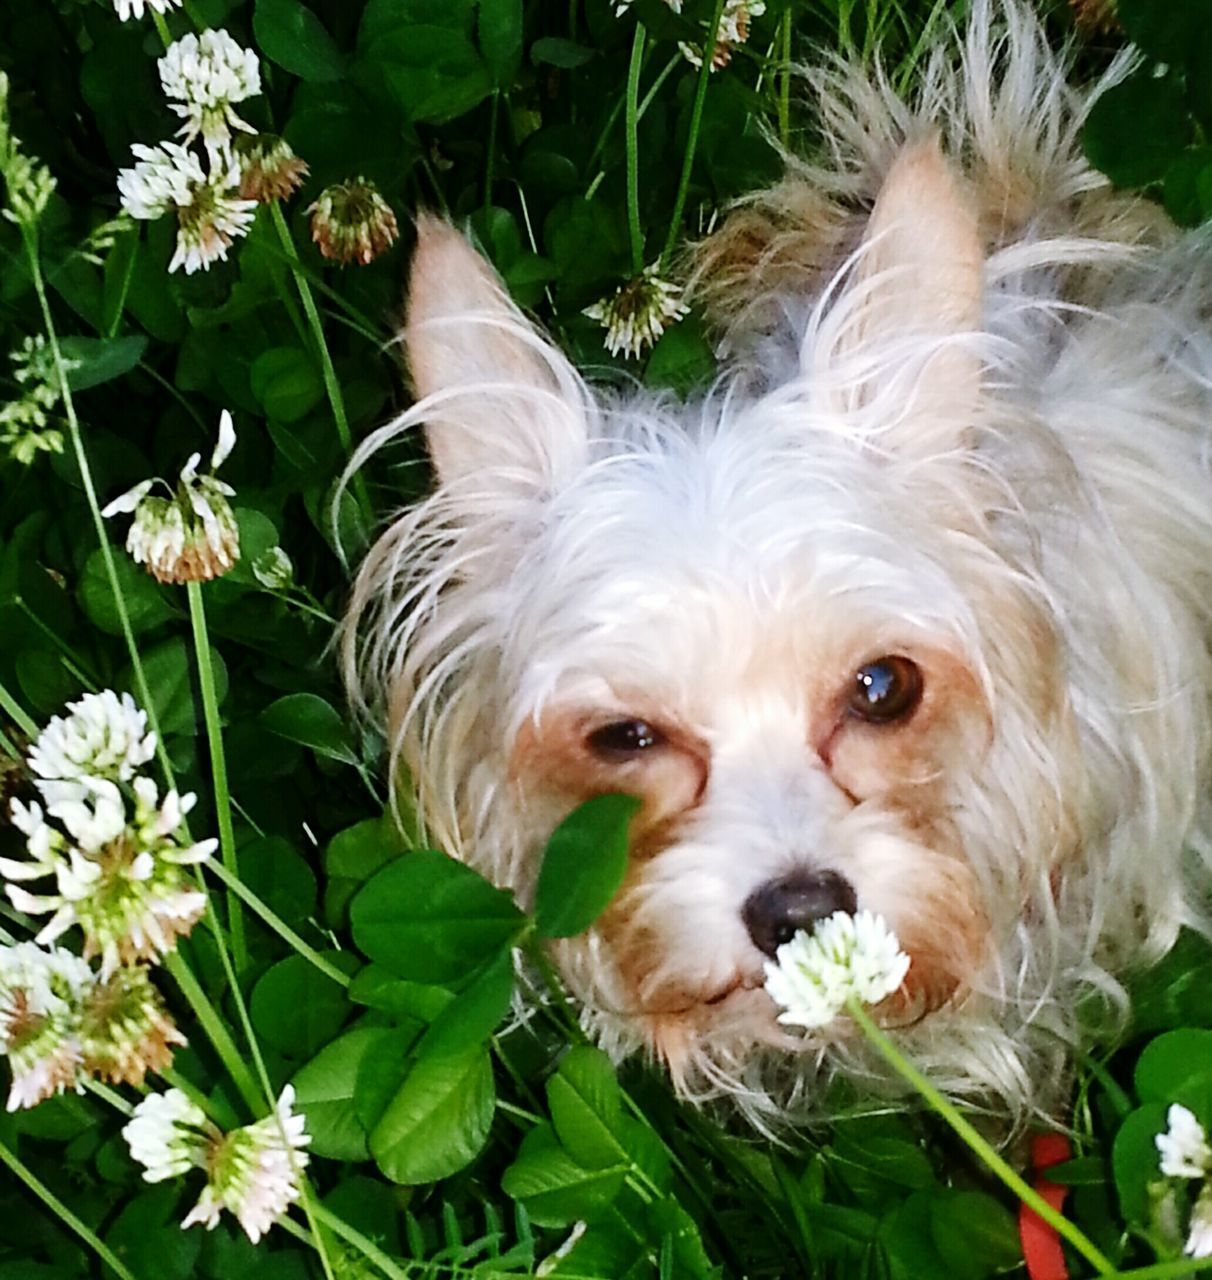 dog, canine, one animal, mammal, pets, domestic, domestic animals, animal themes, animal, looking at camera, portrait, vertebrate, plant, close-up, flower, no people, flowering plant, day, animal body part, lap dog, animal head, small